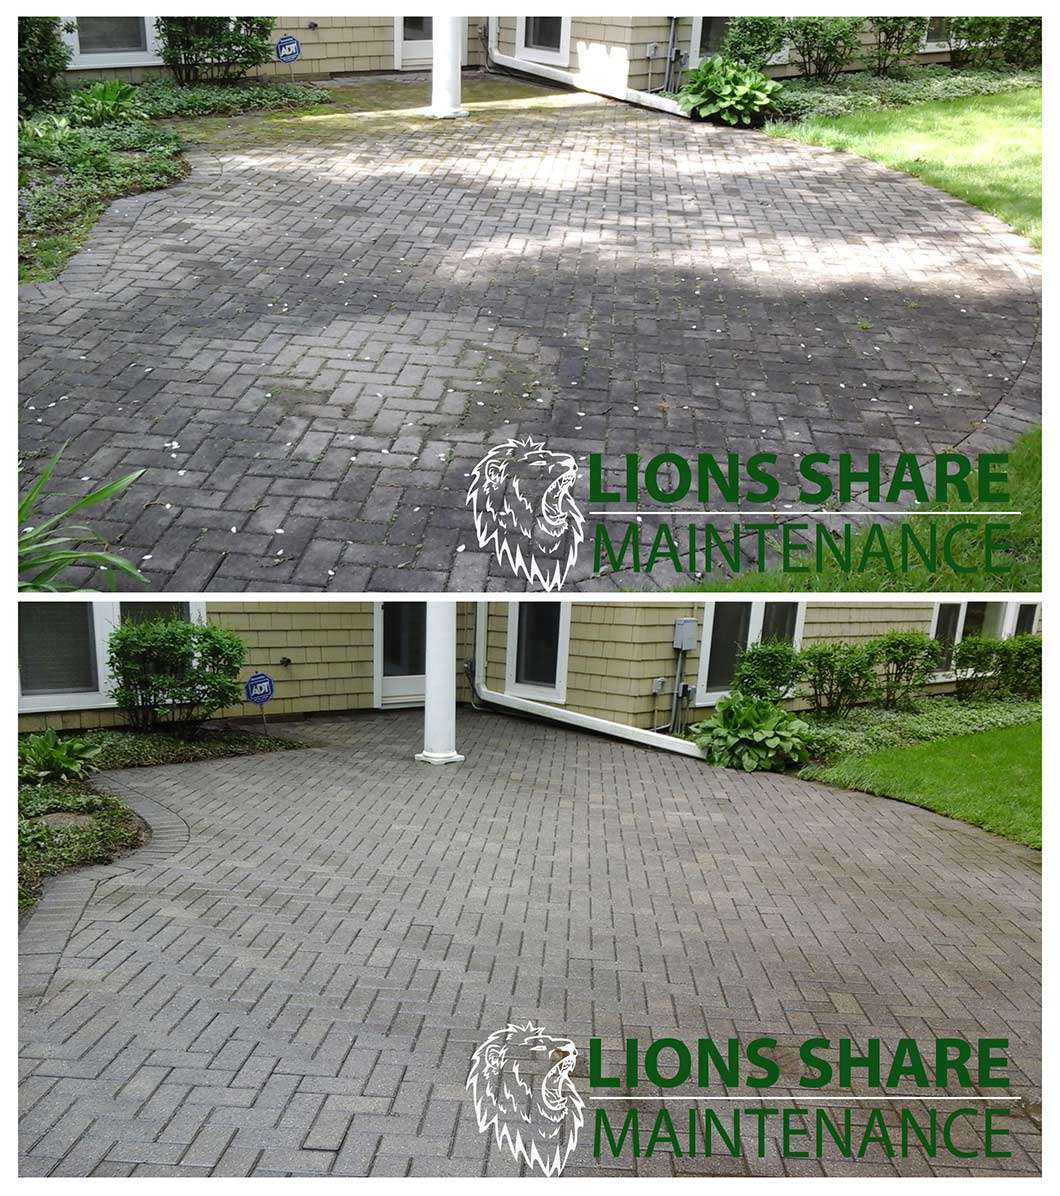 Pressure wash pavers in St. Paul and Minneapolis Minnesota areas